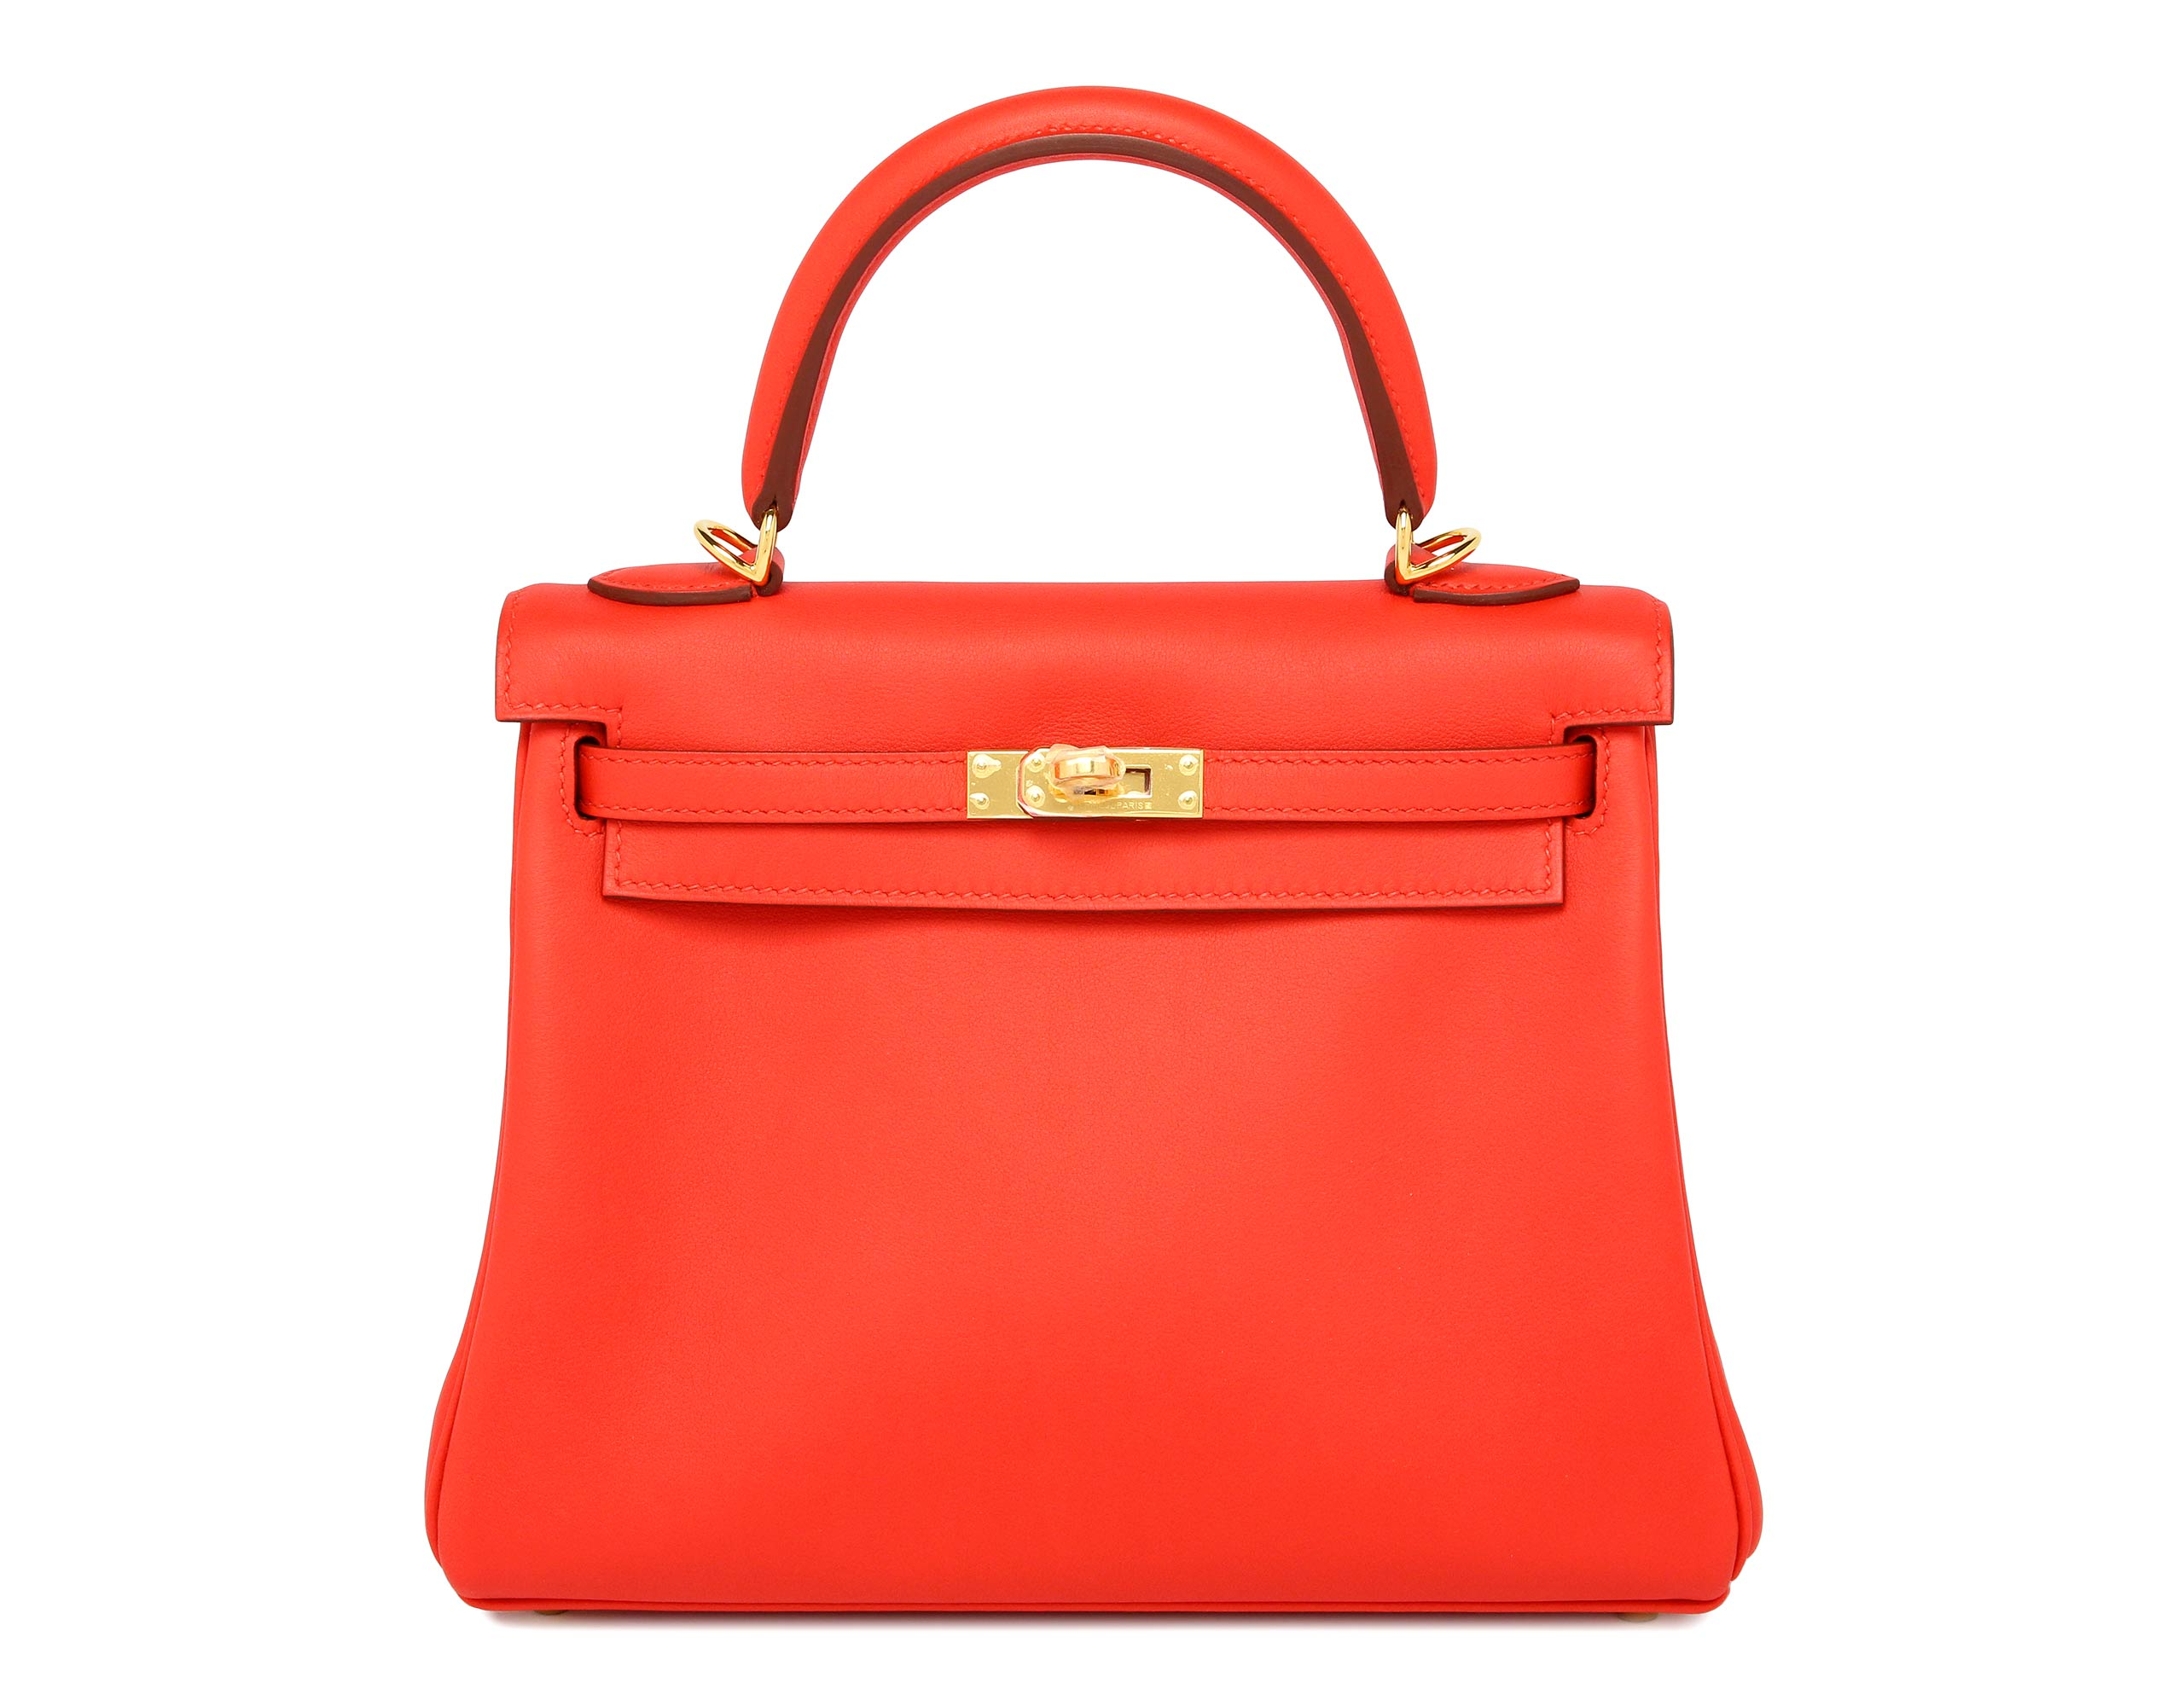 hermes wallet price - Hermes Kelly Bags For Sale | Bags of Luxury